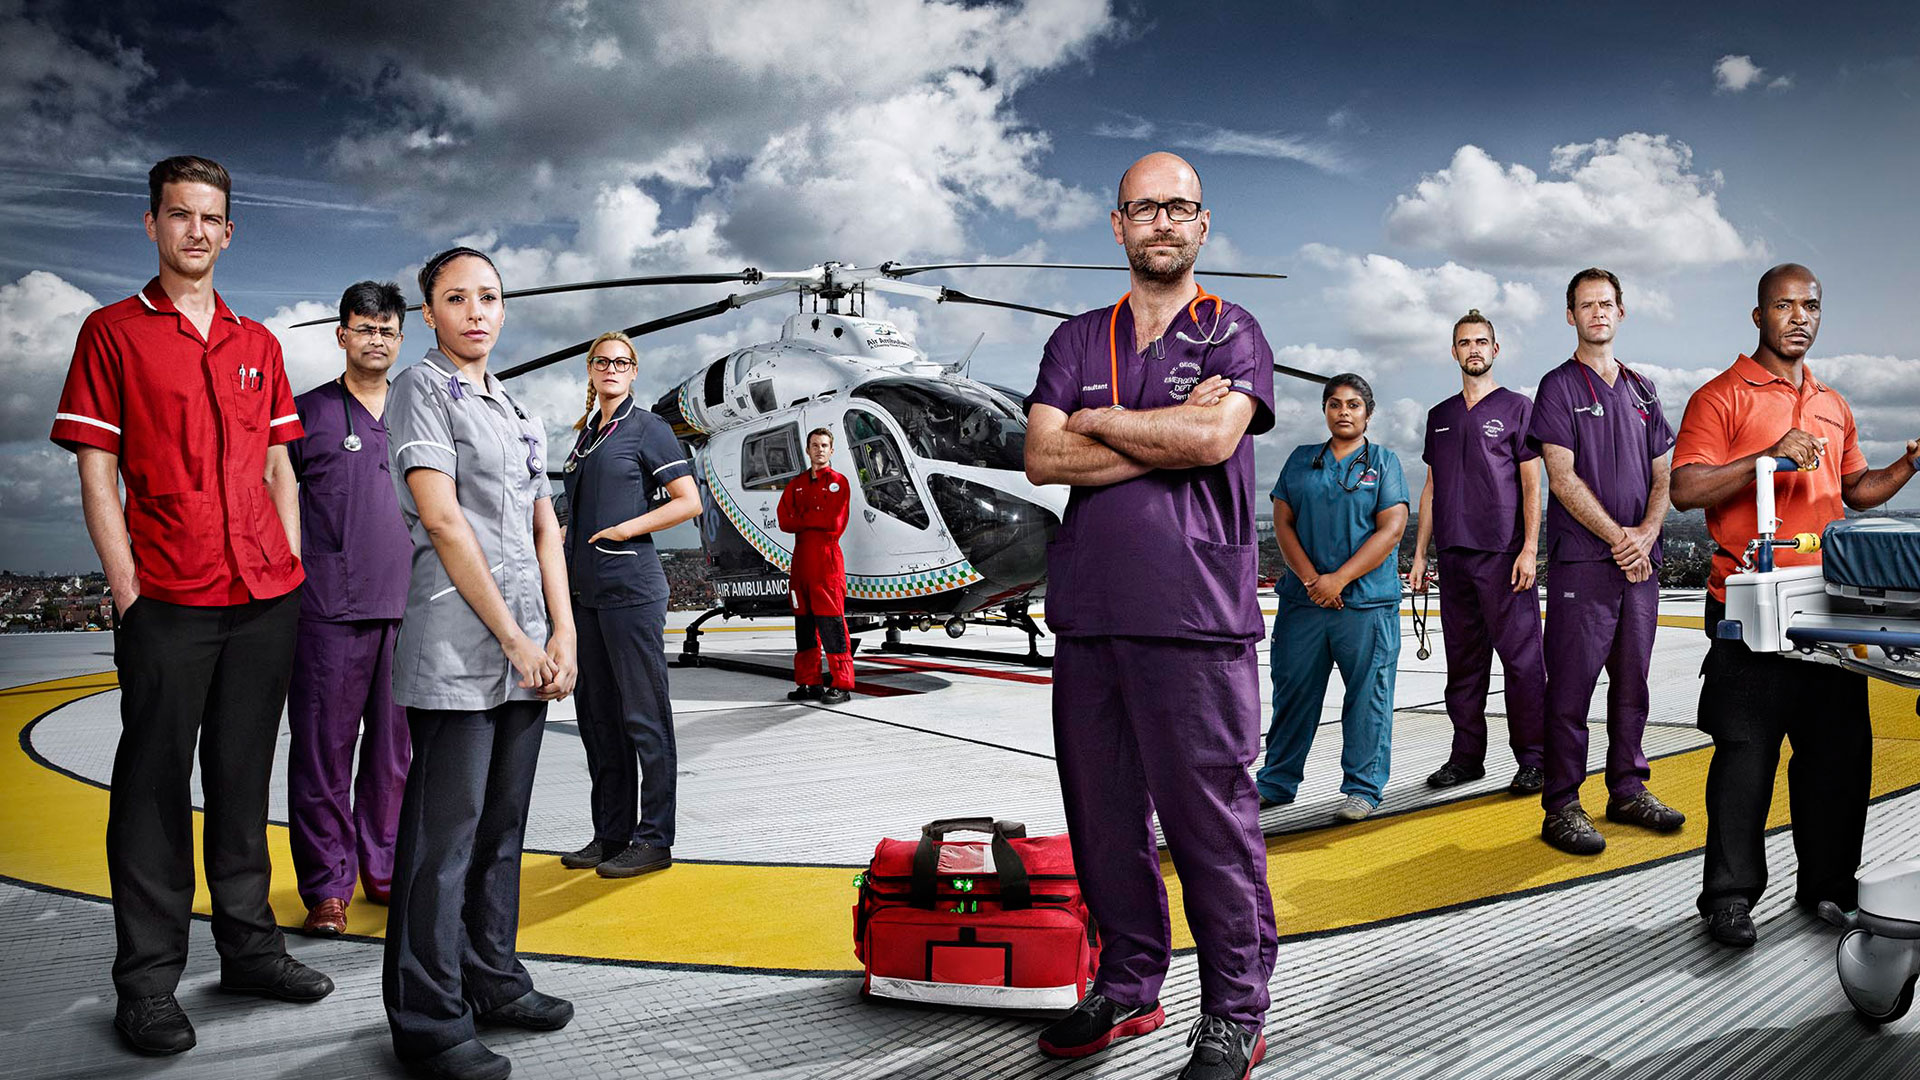 24 Hours in A&E for Stand Up To Cancer